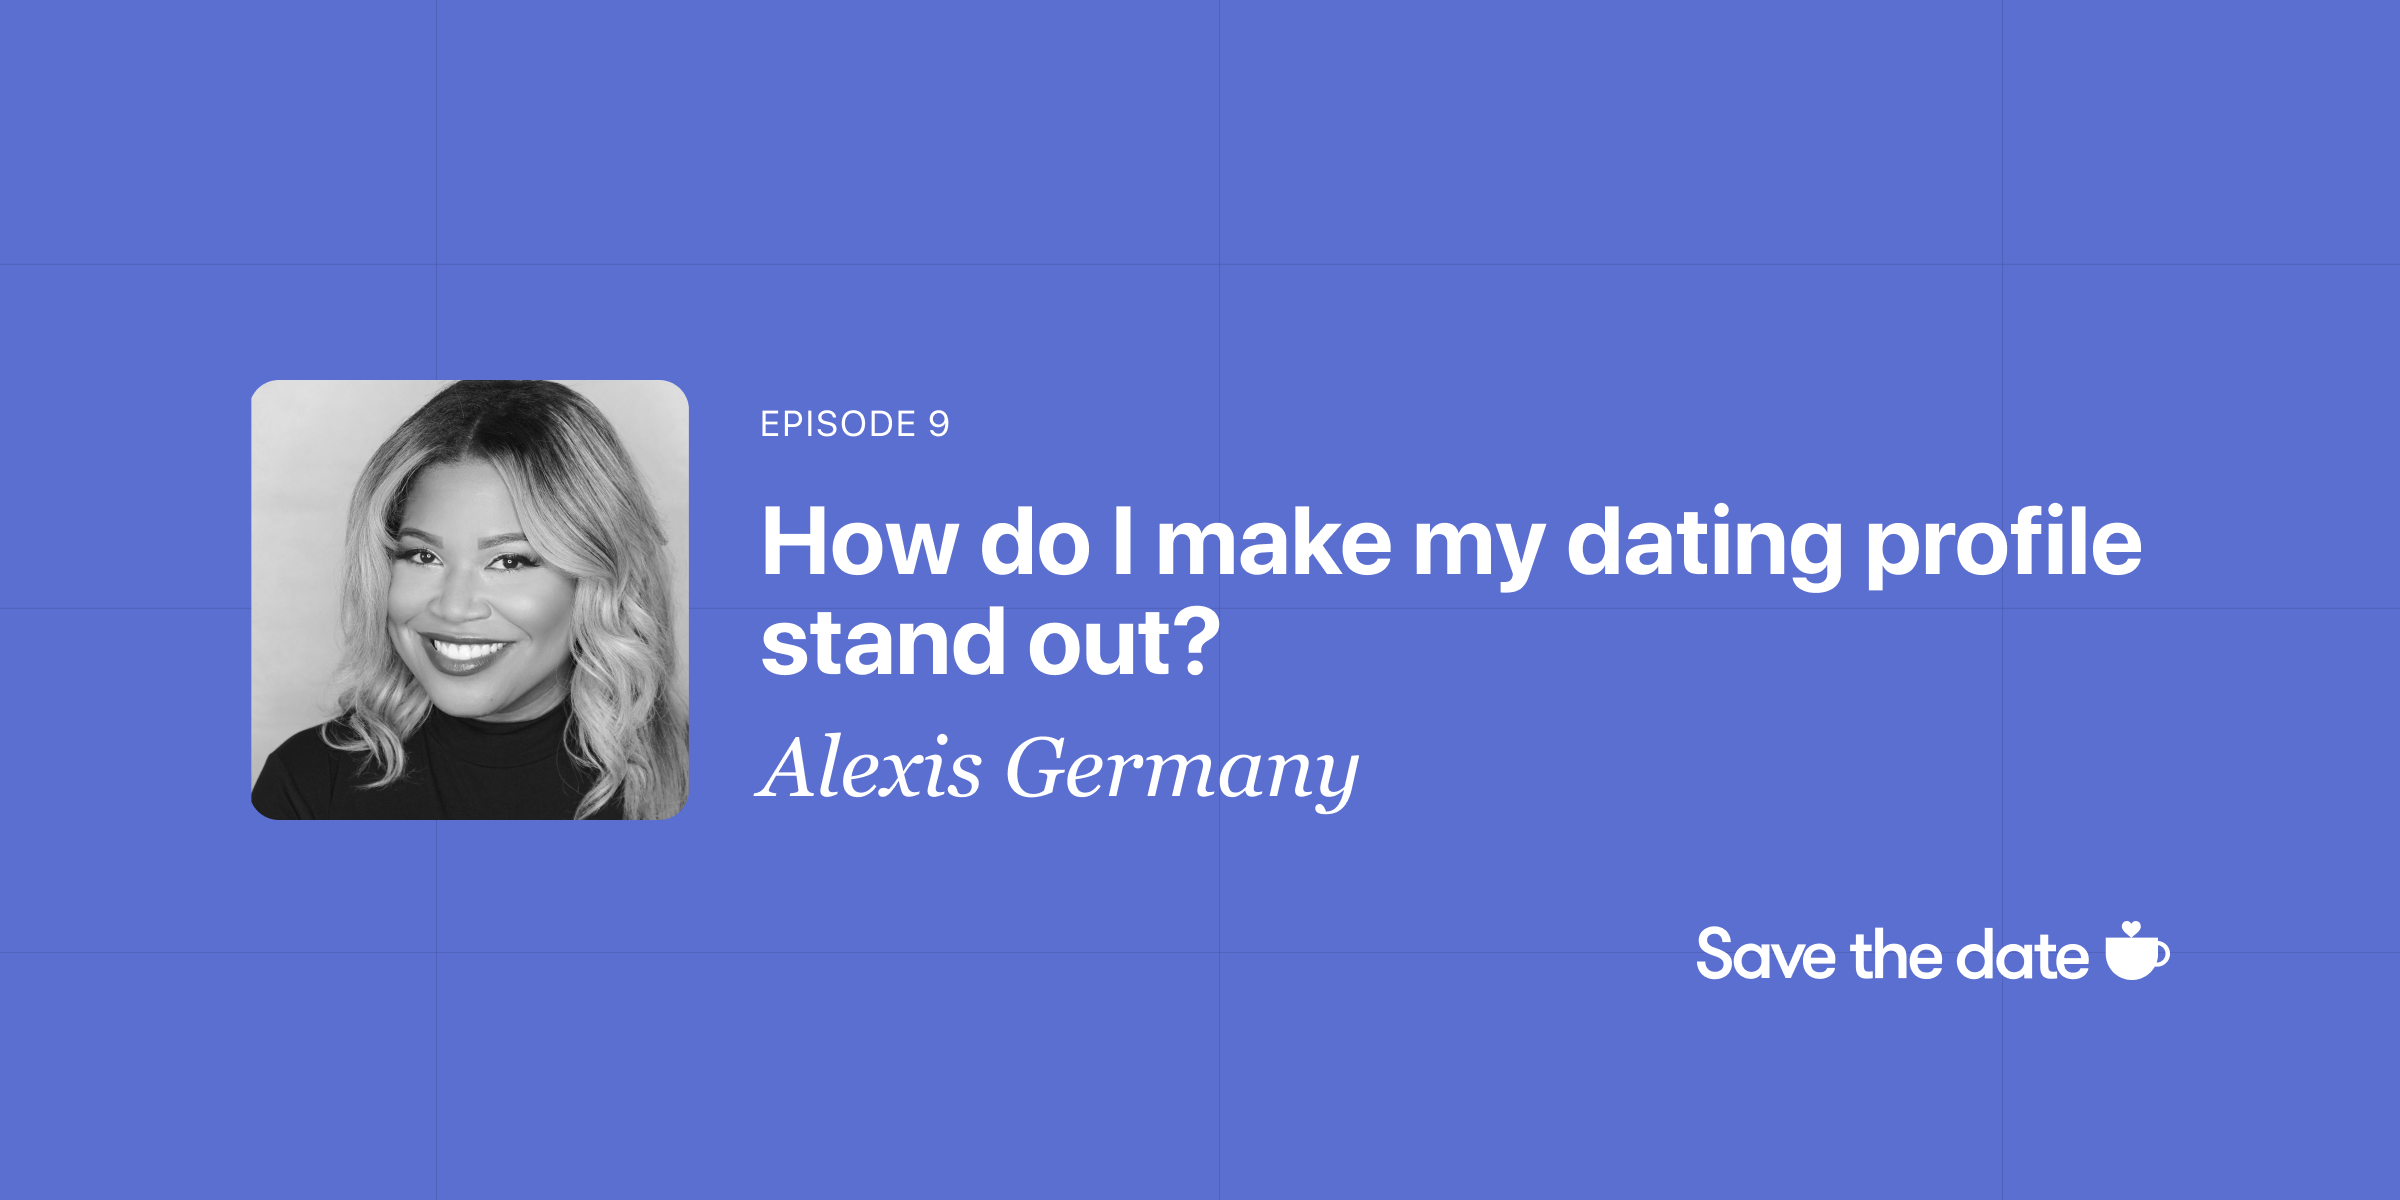 Alexis Germany, Episode 9